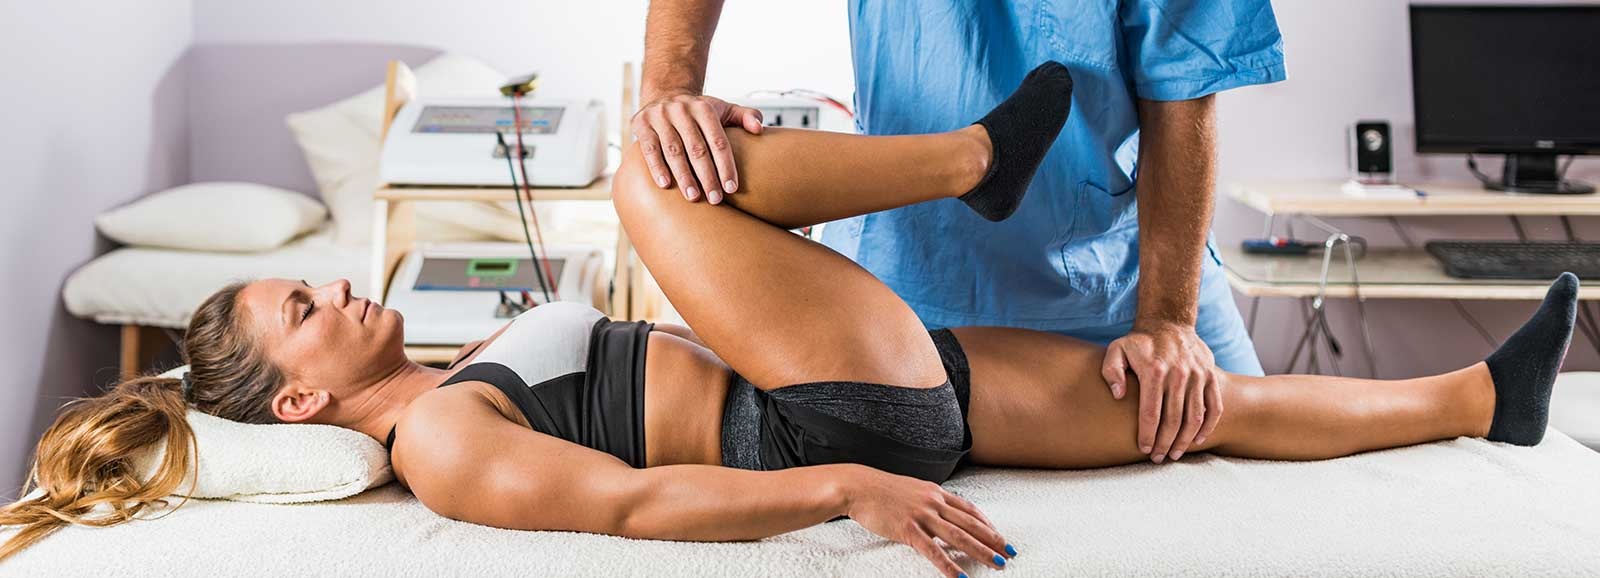 Athlete With Injuries Gets Chiropractor Adjustment- Feels